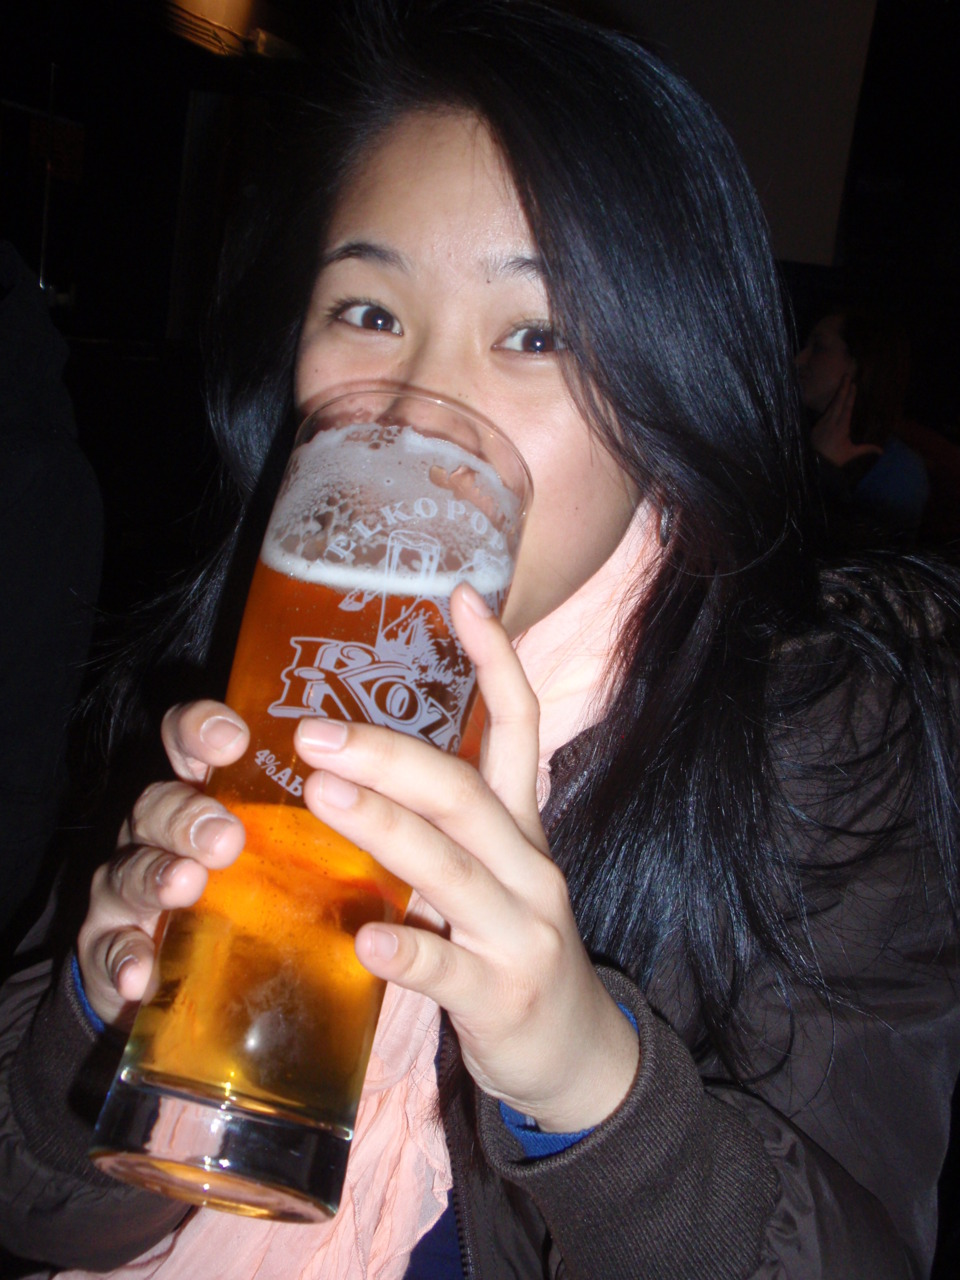 Had my first pint of beer in London @ The Builders Arms in Kensington!